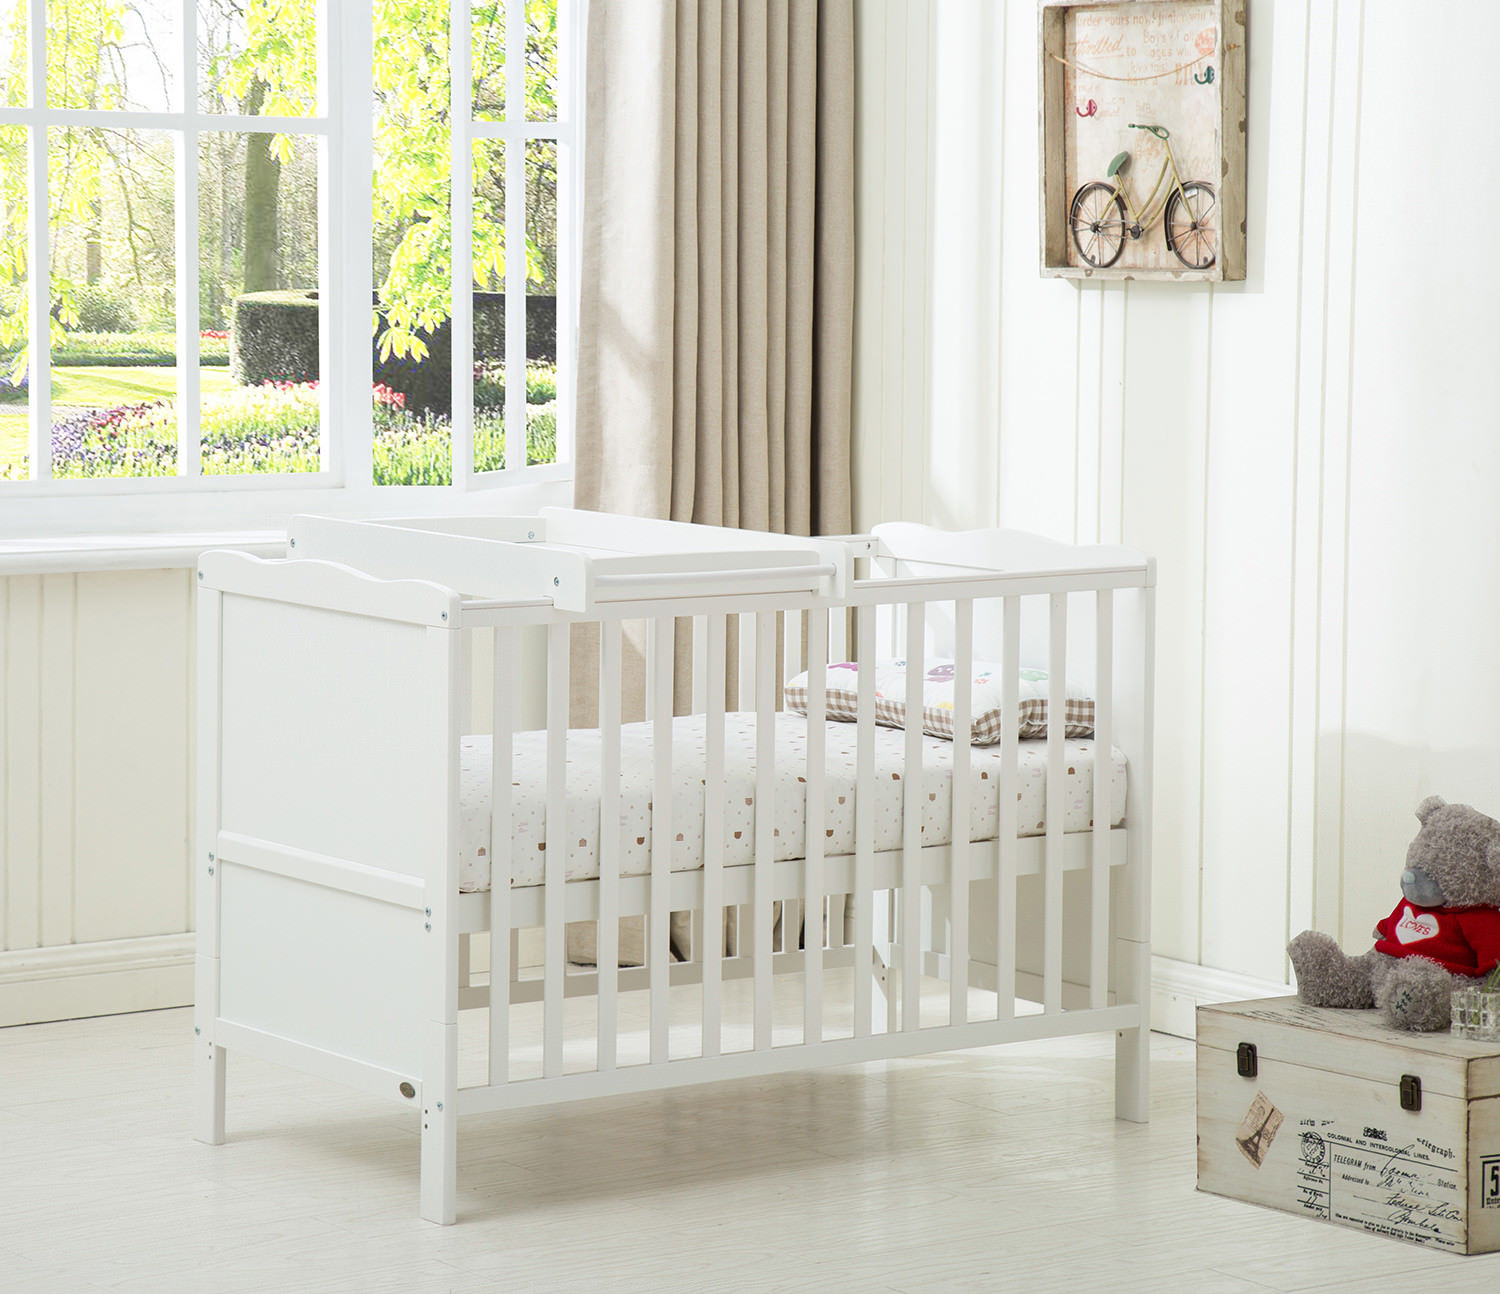 New White Solid Wood Baby Cot Bed With Top Changer And Mattress